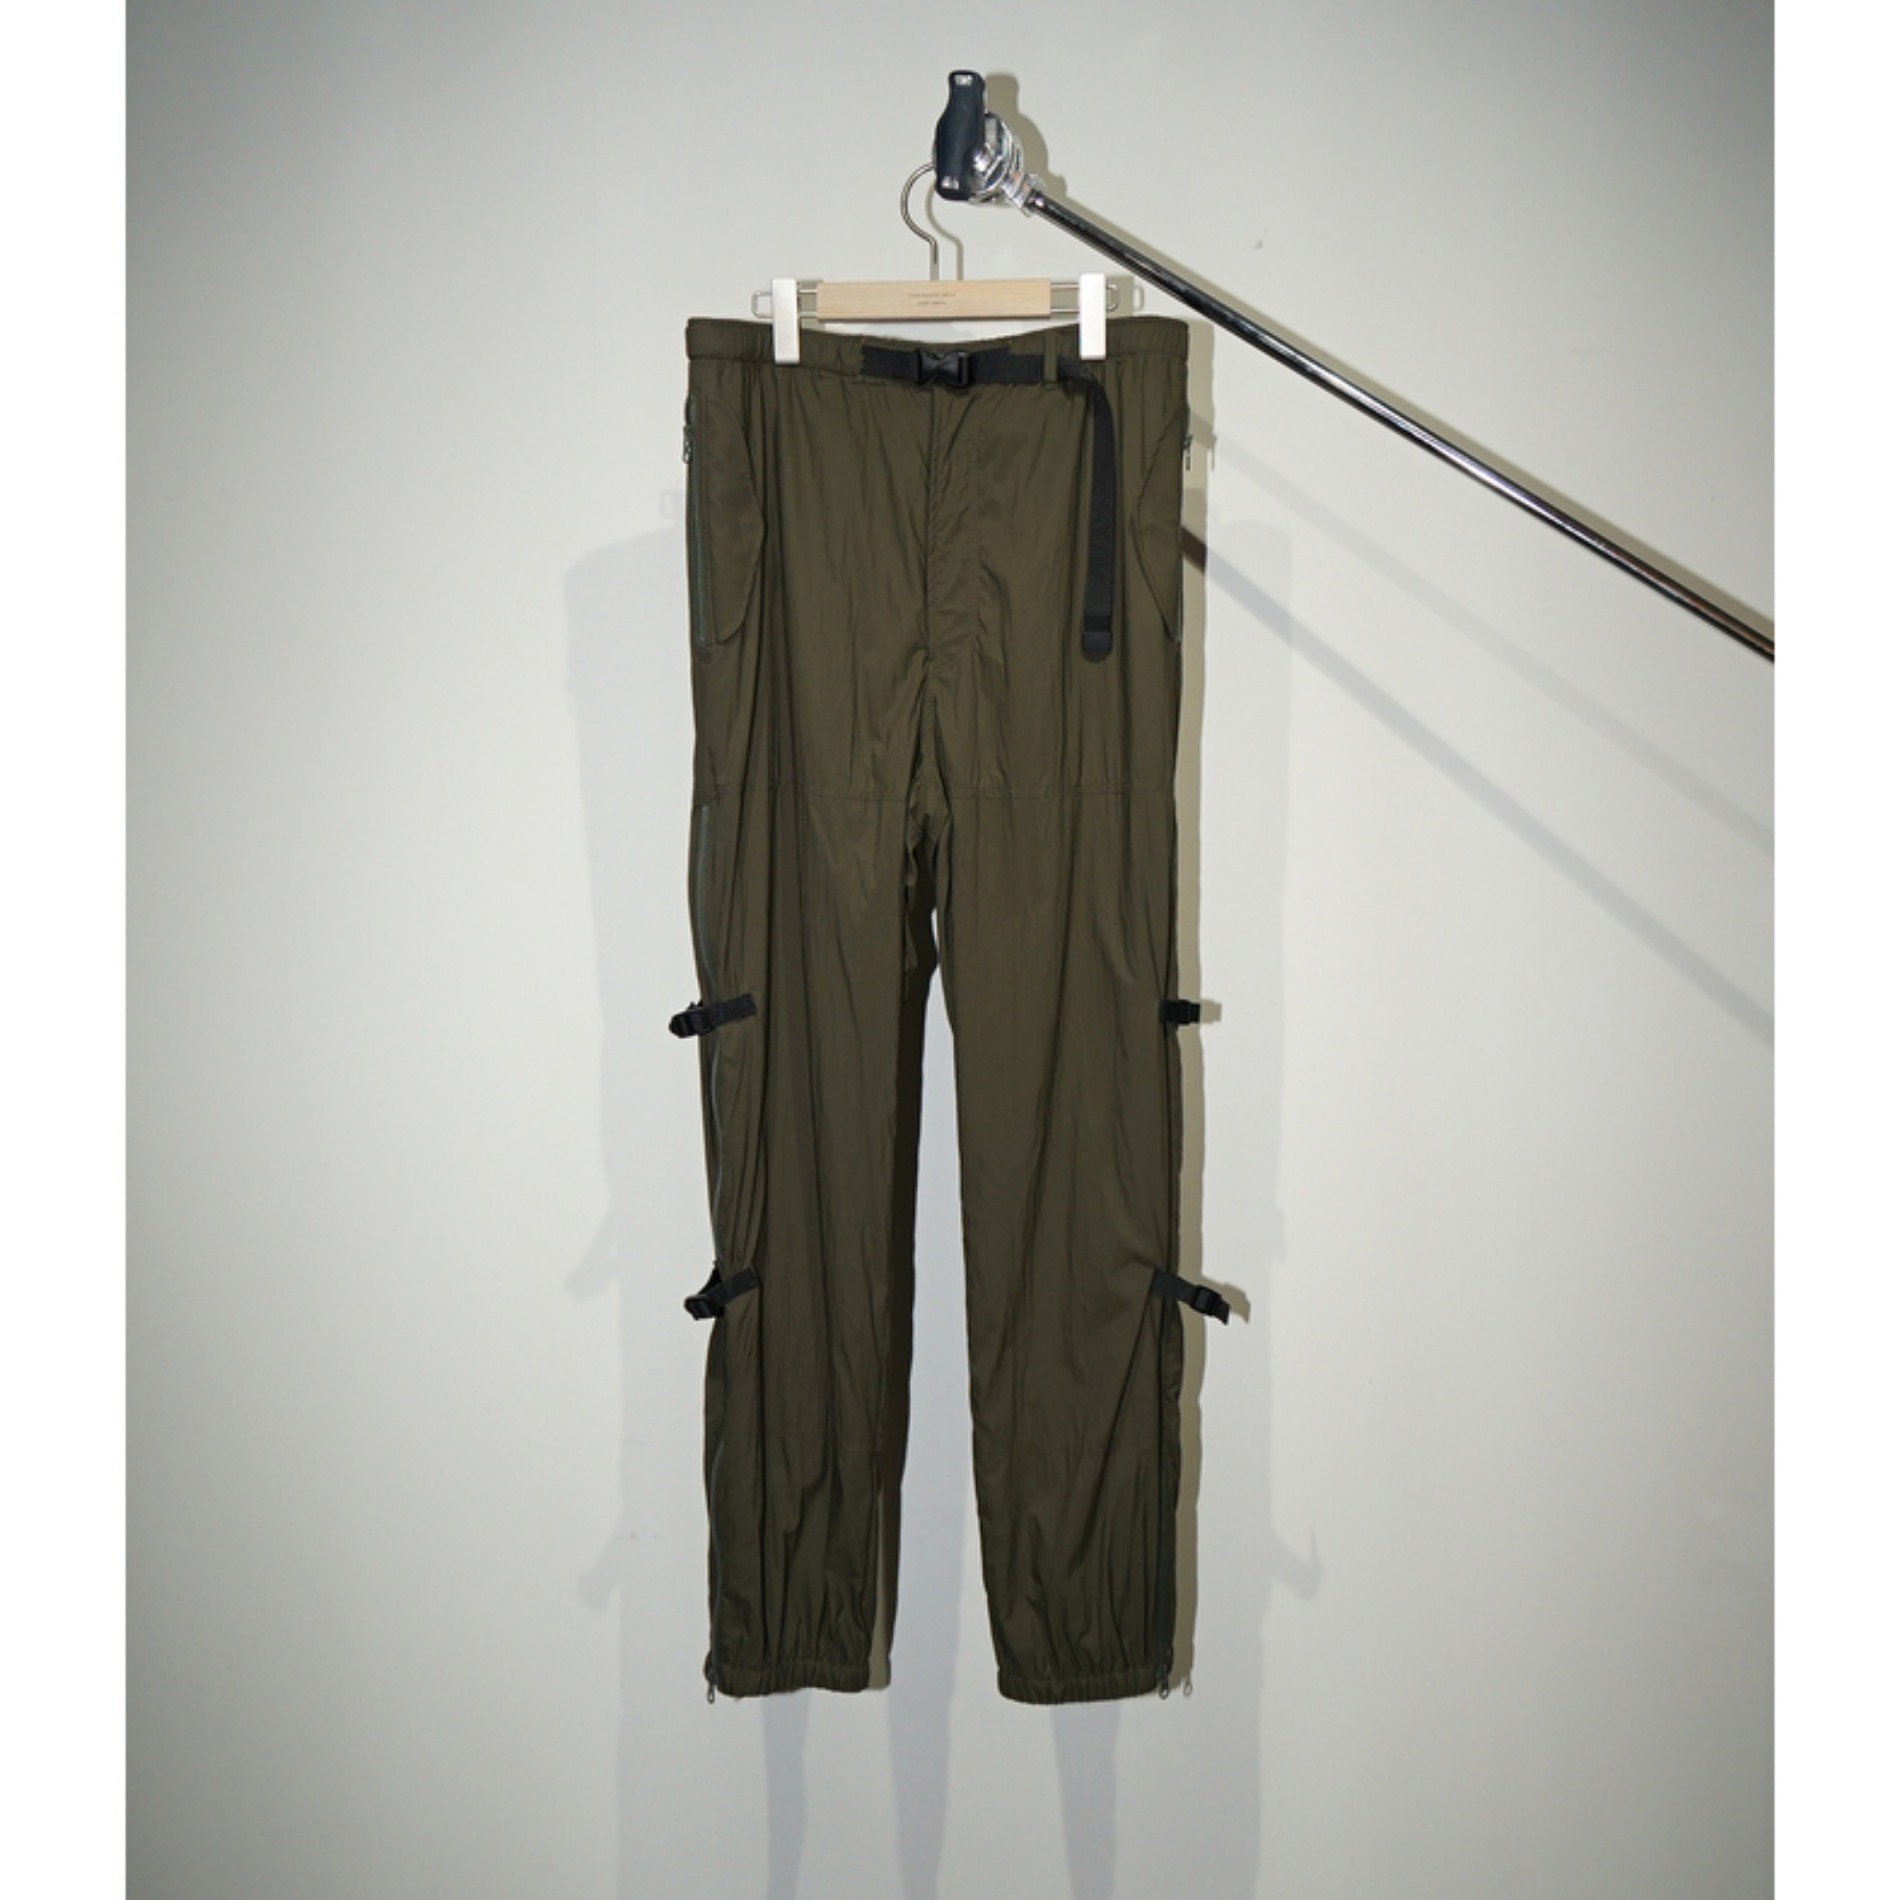 AW20 JOHN MASON SMITH OVER PANTS KHAKI